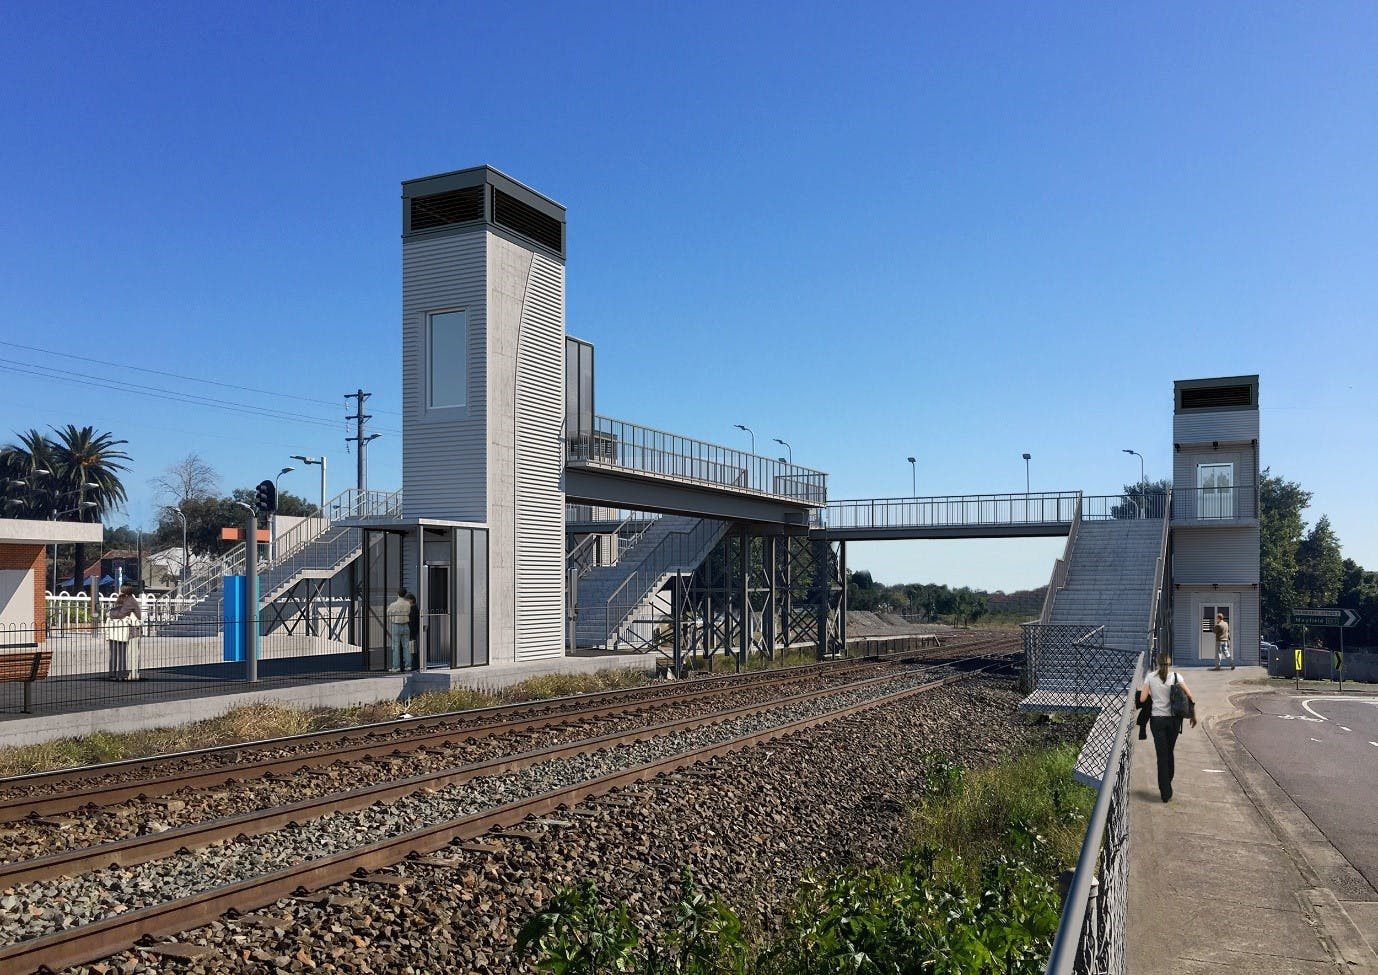 Artist's impression of the Waratah Station Upgrade, subject to detailed design.